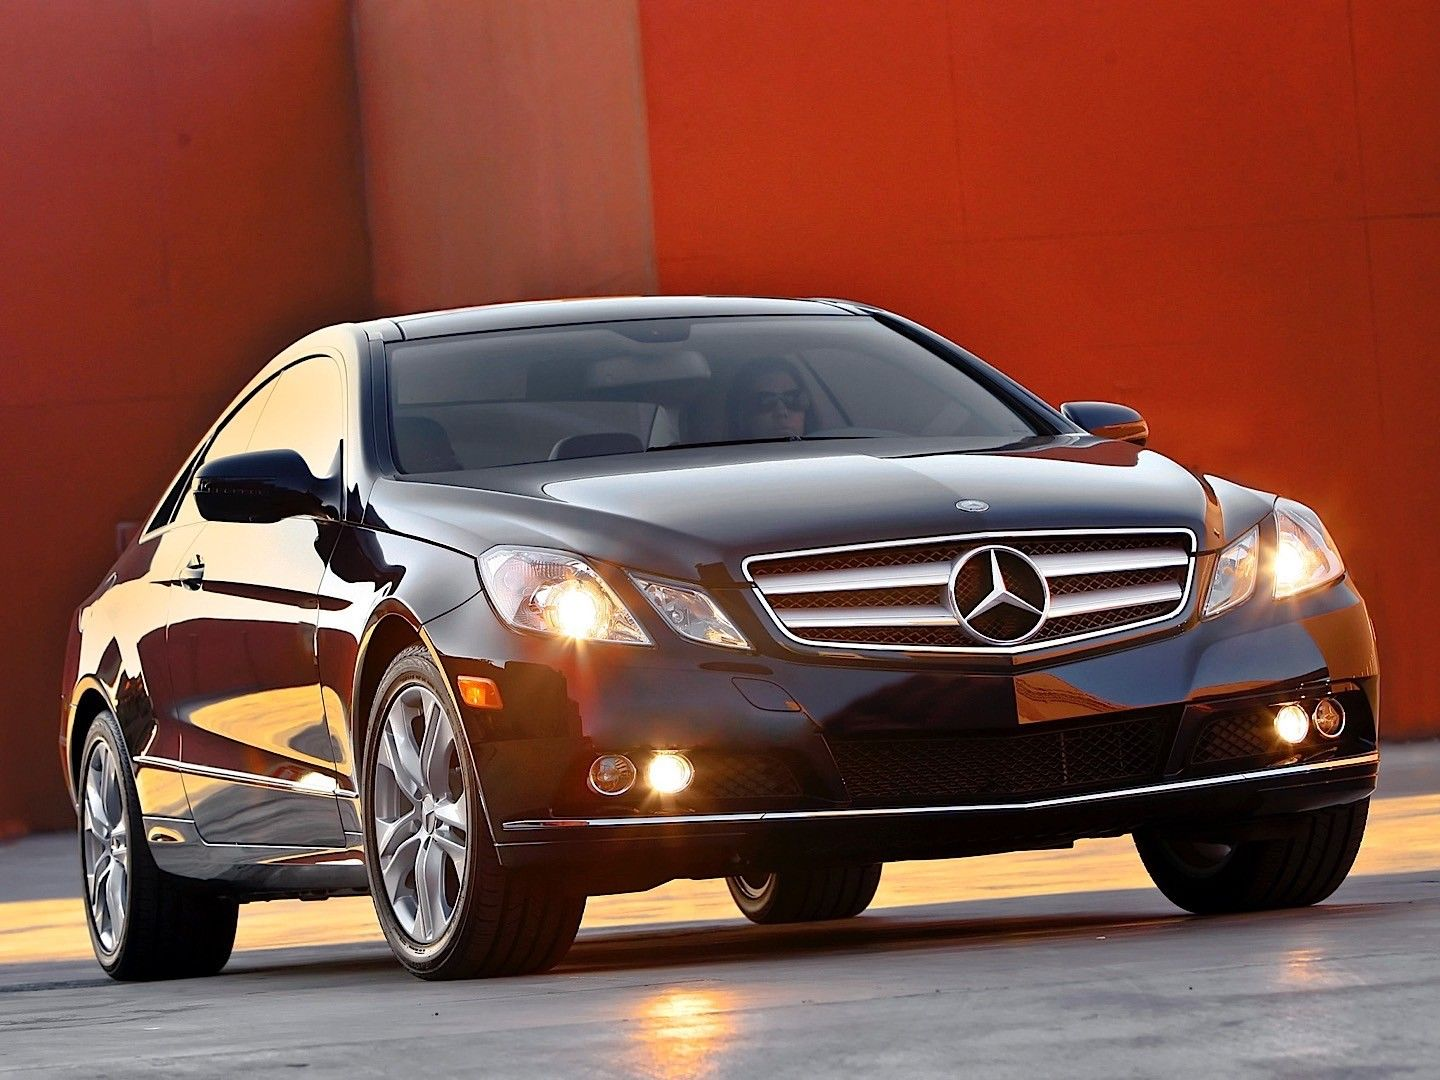 2010 Mbz E350 Coupe Convertible On Concept One Executive Rs 55